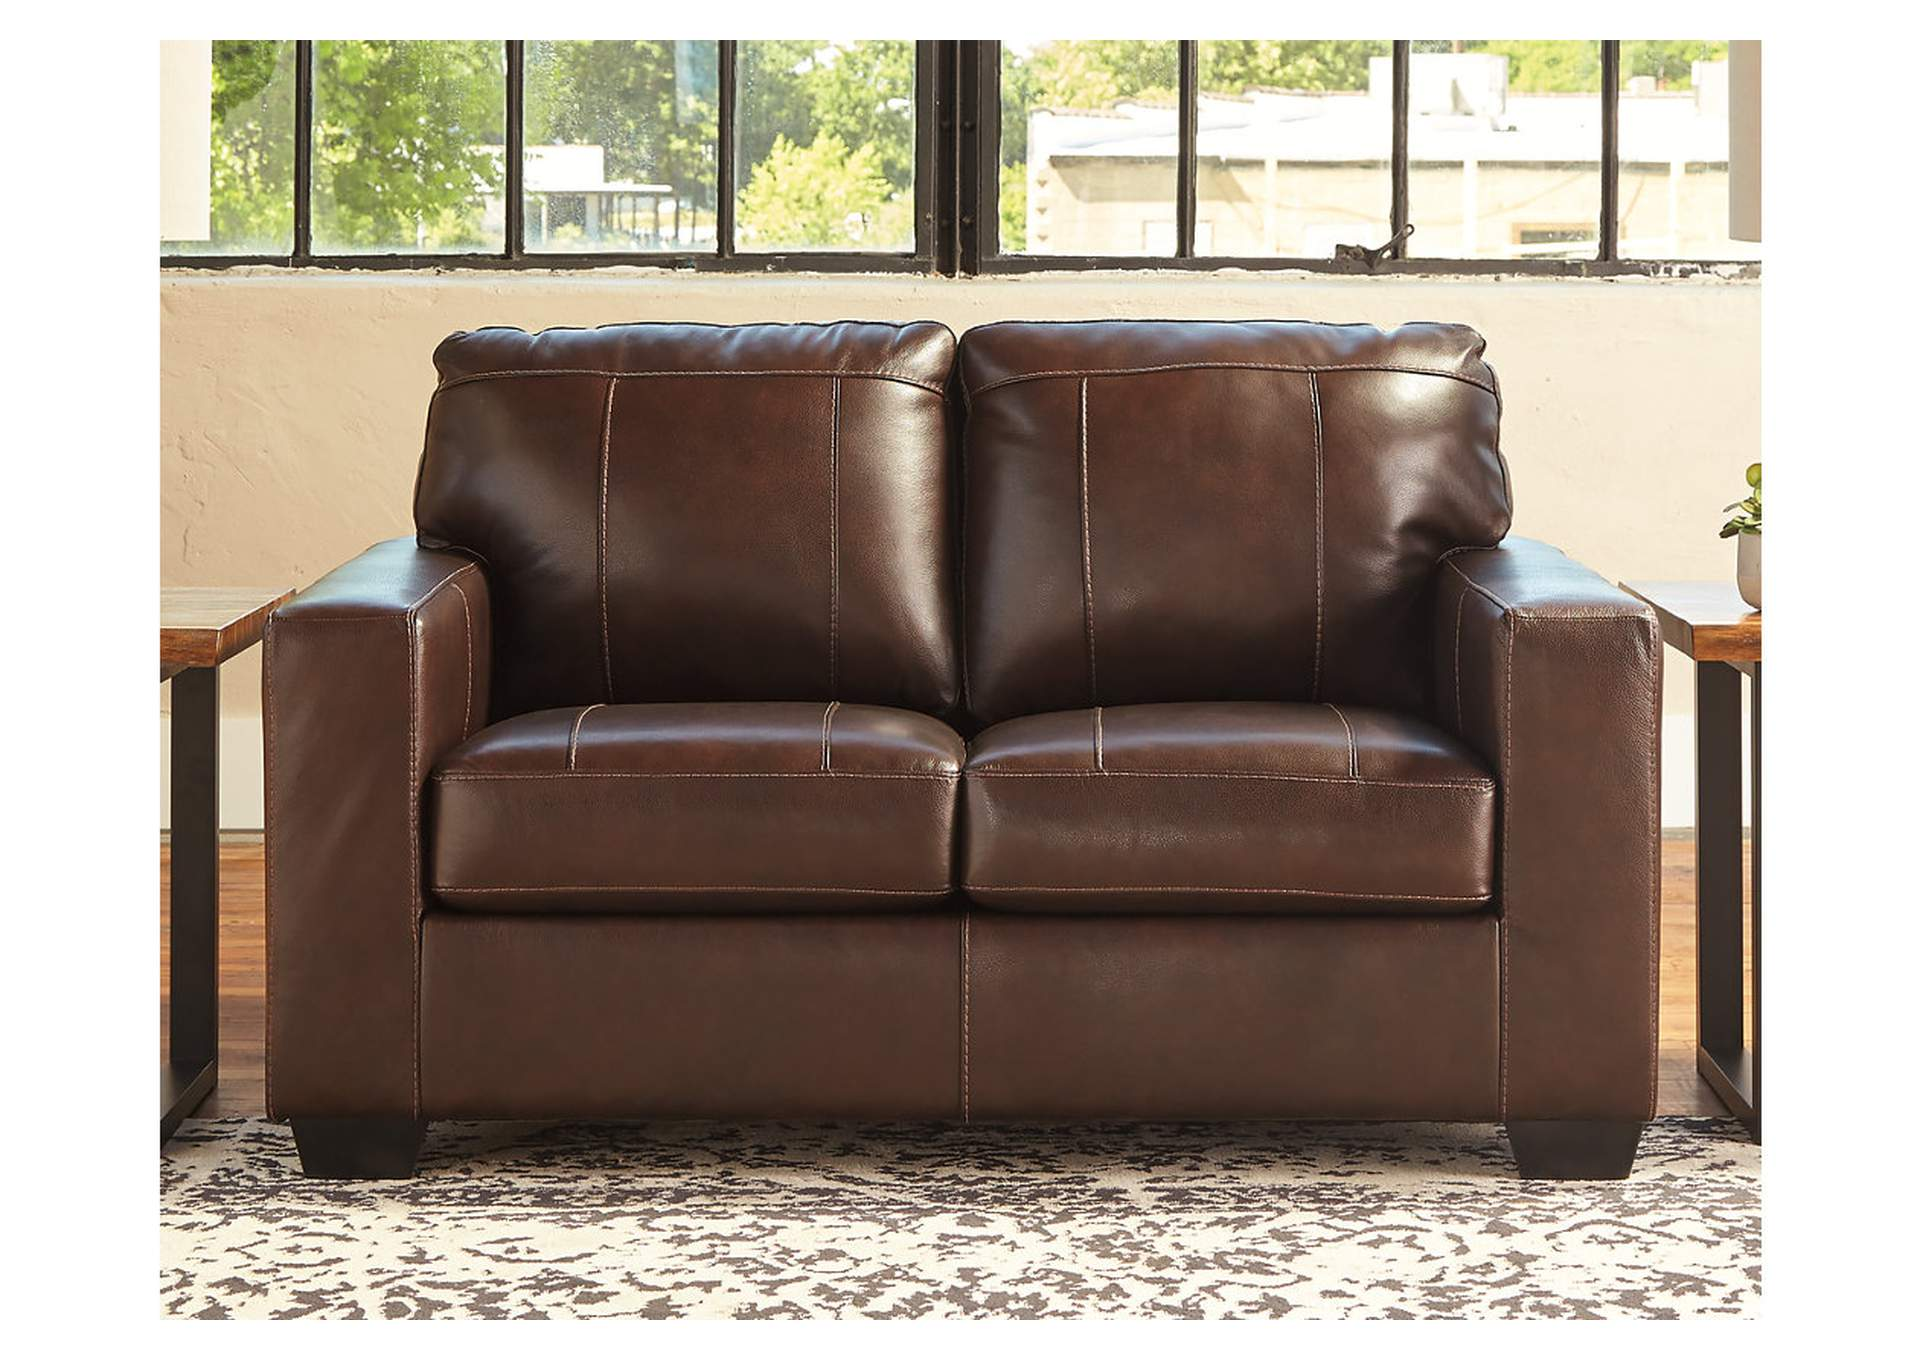 Morelos Chocolate Loveseat,Signature Design By Ashley